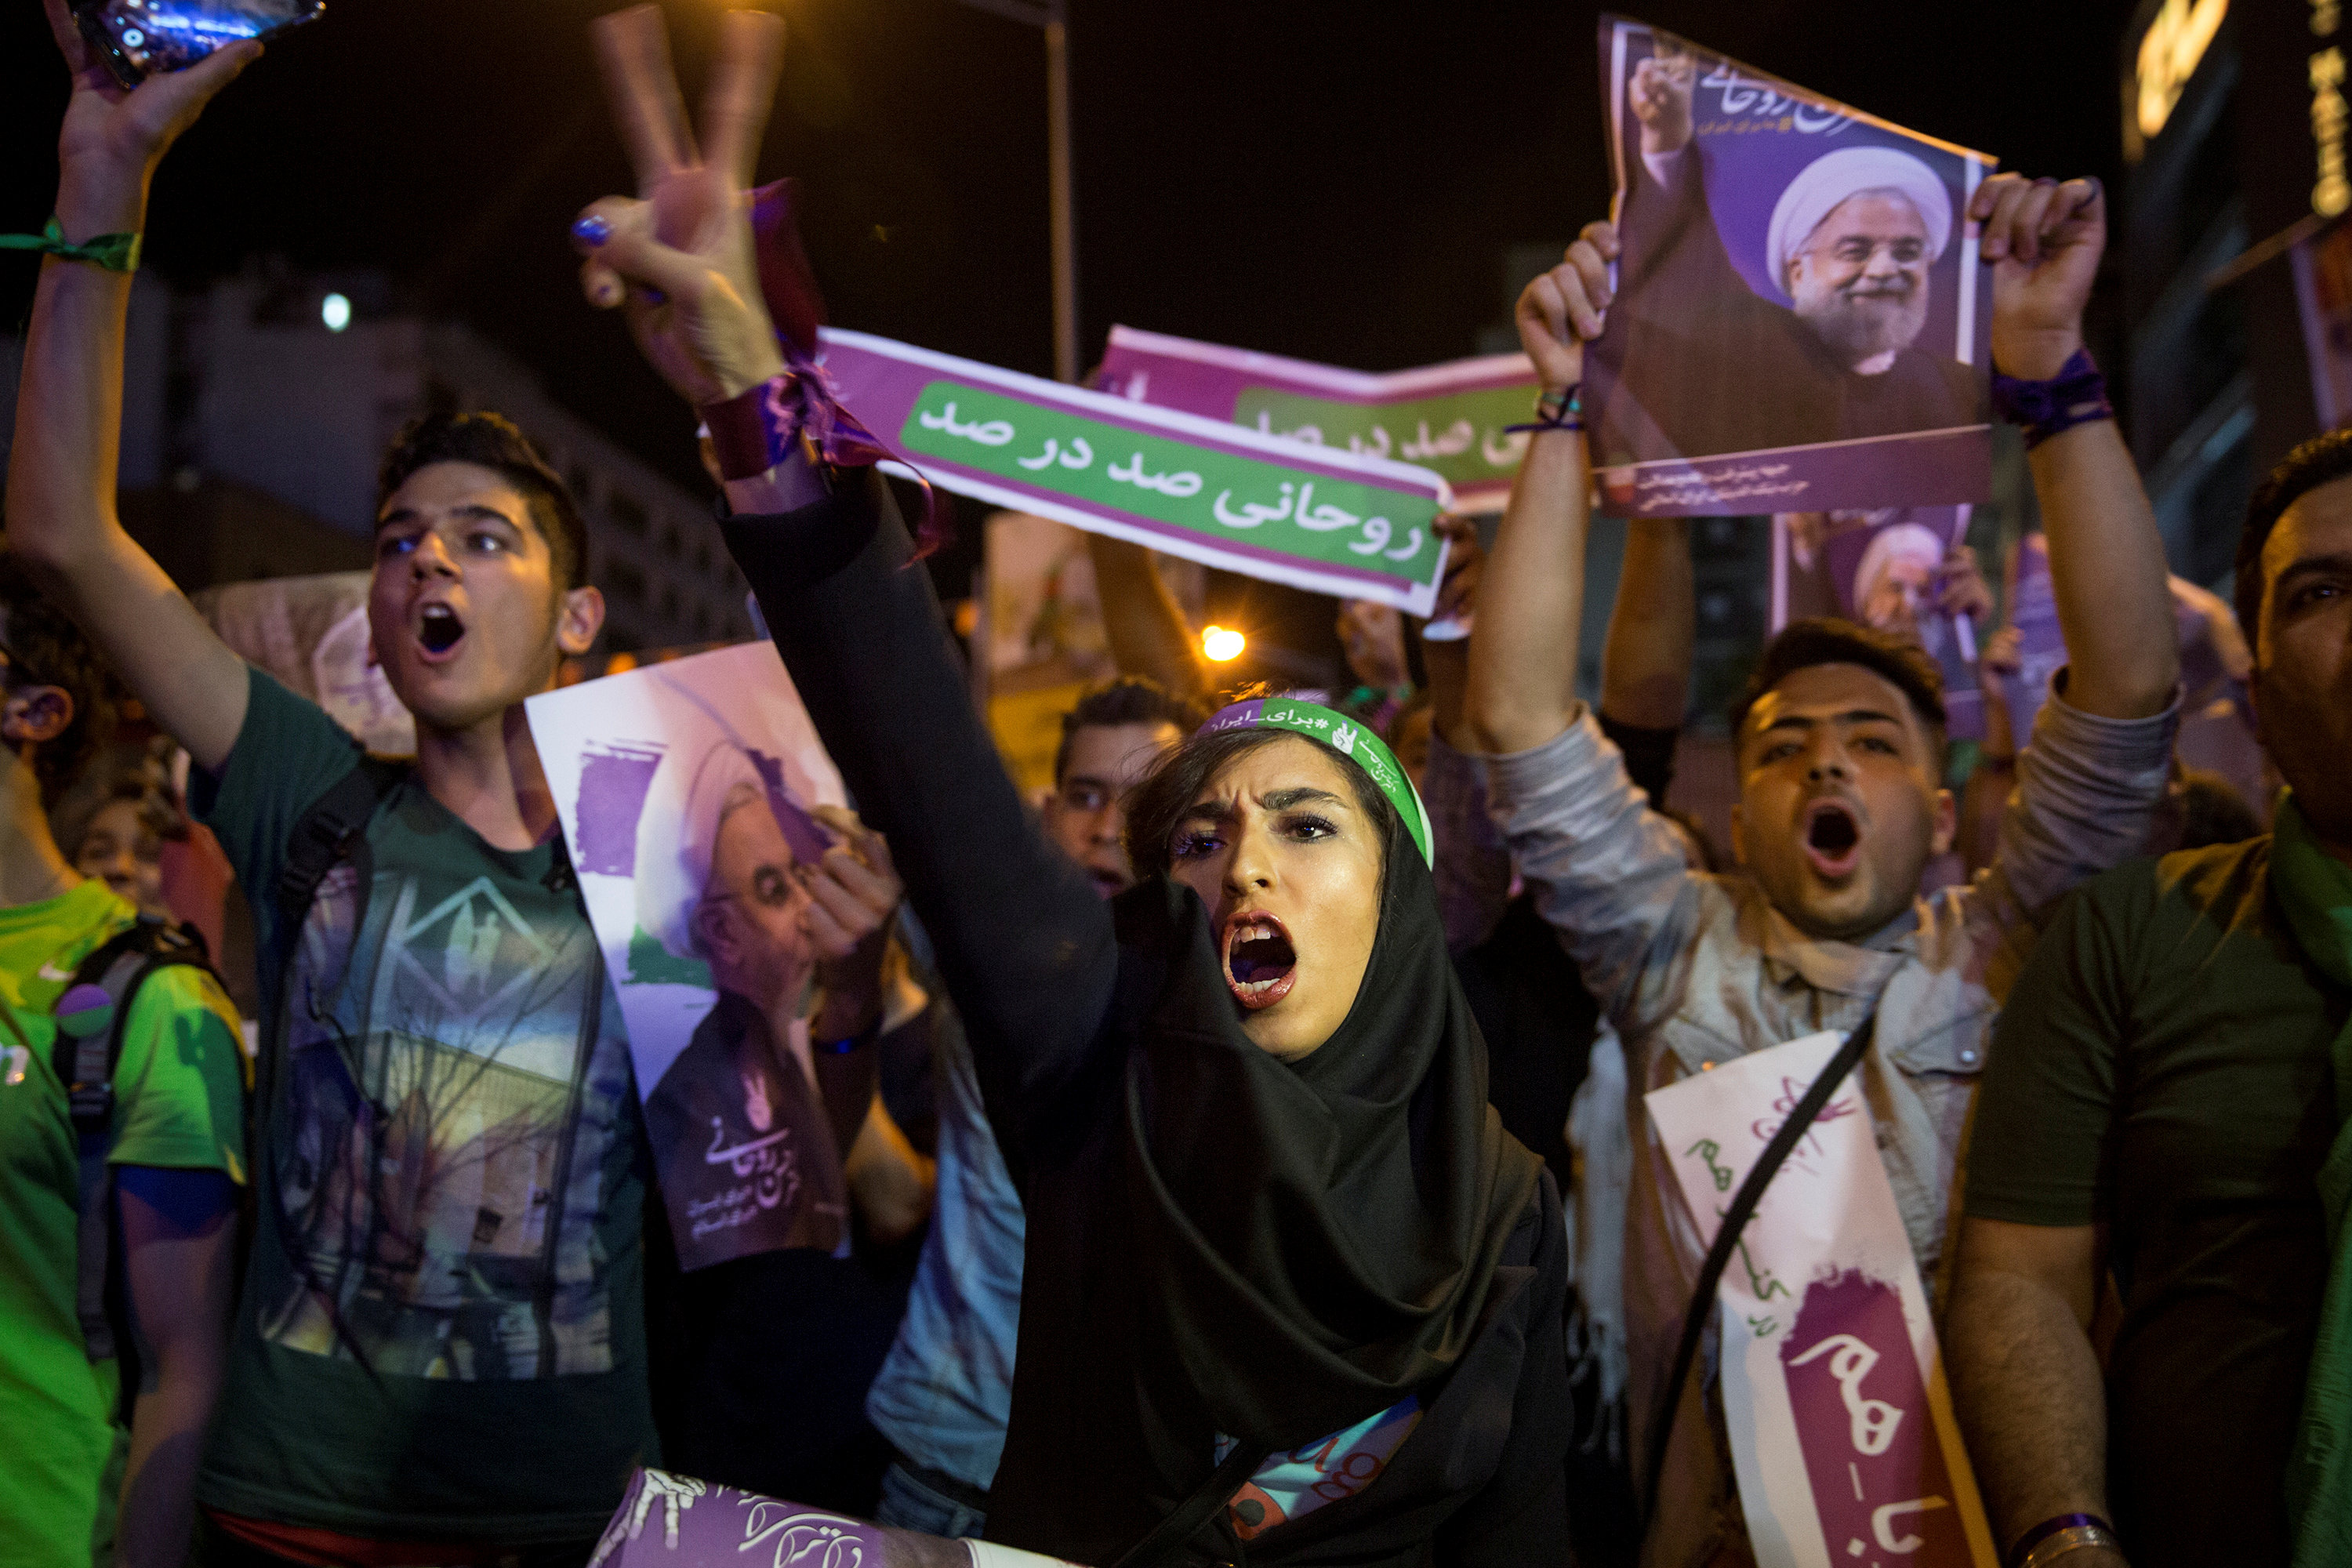 FILE PHOTO: Supporters of Iran's President Hassan Rouhani take part in a campaign rally in Tehran, Iran, May 17, 2017. Picture taken May 17, 2017. TIMA via REUTERS/File Photo